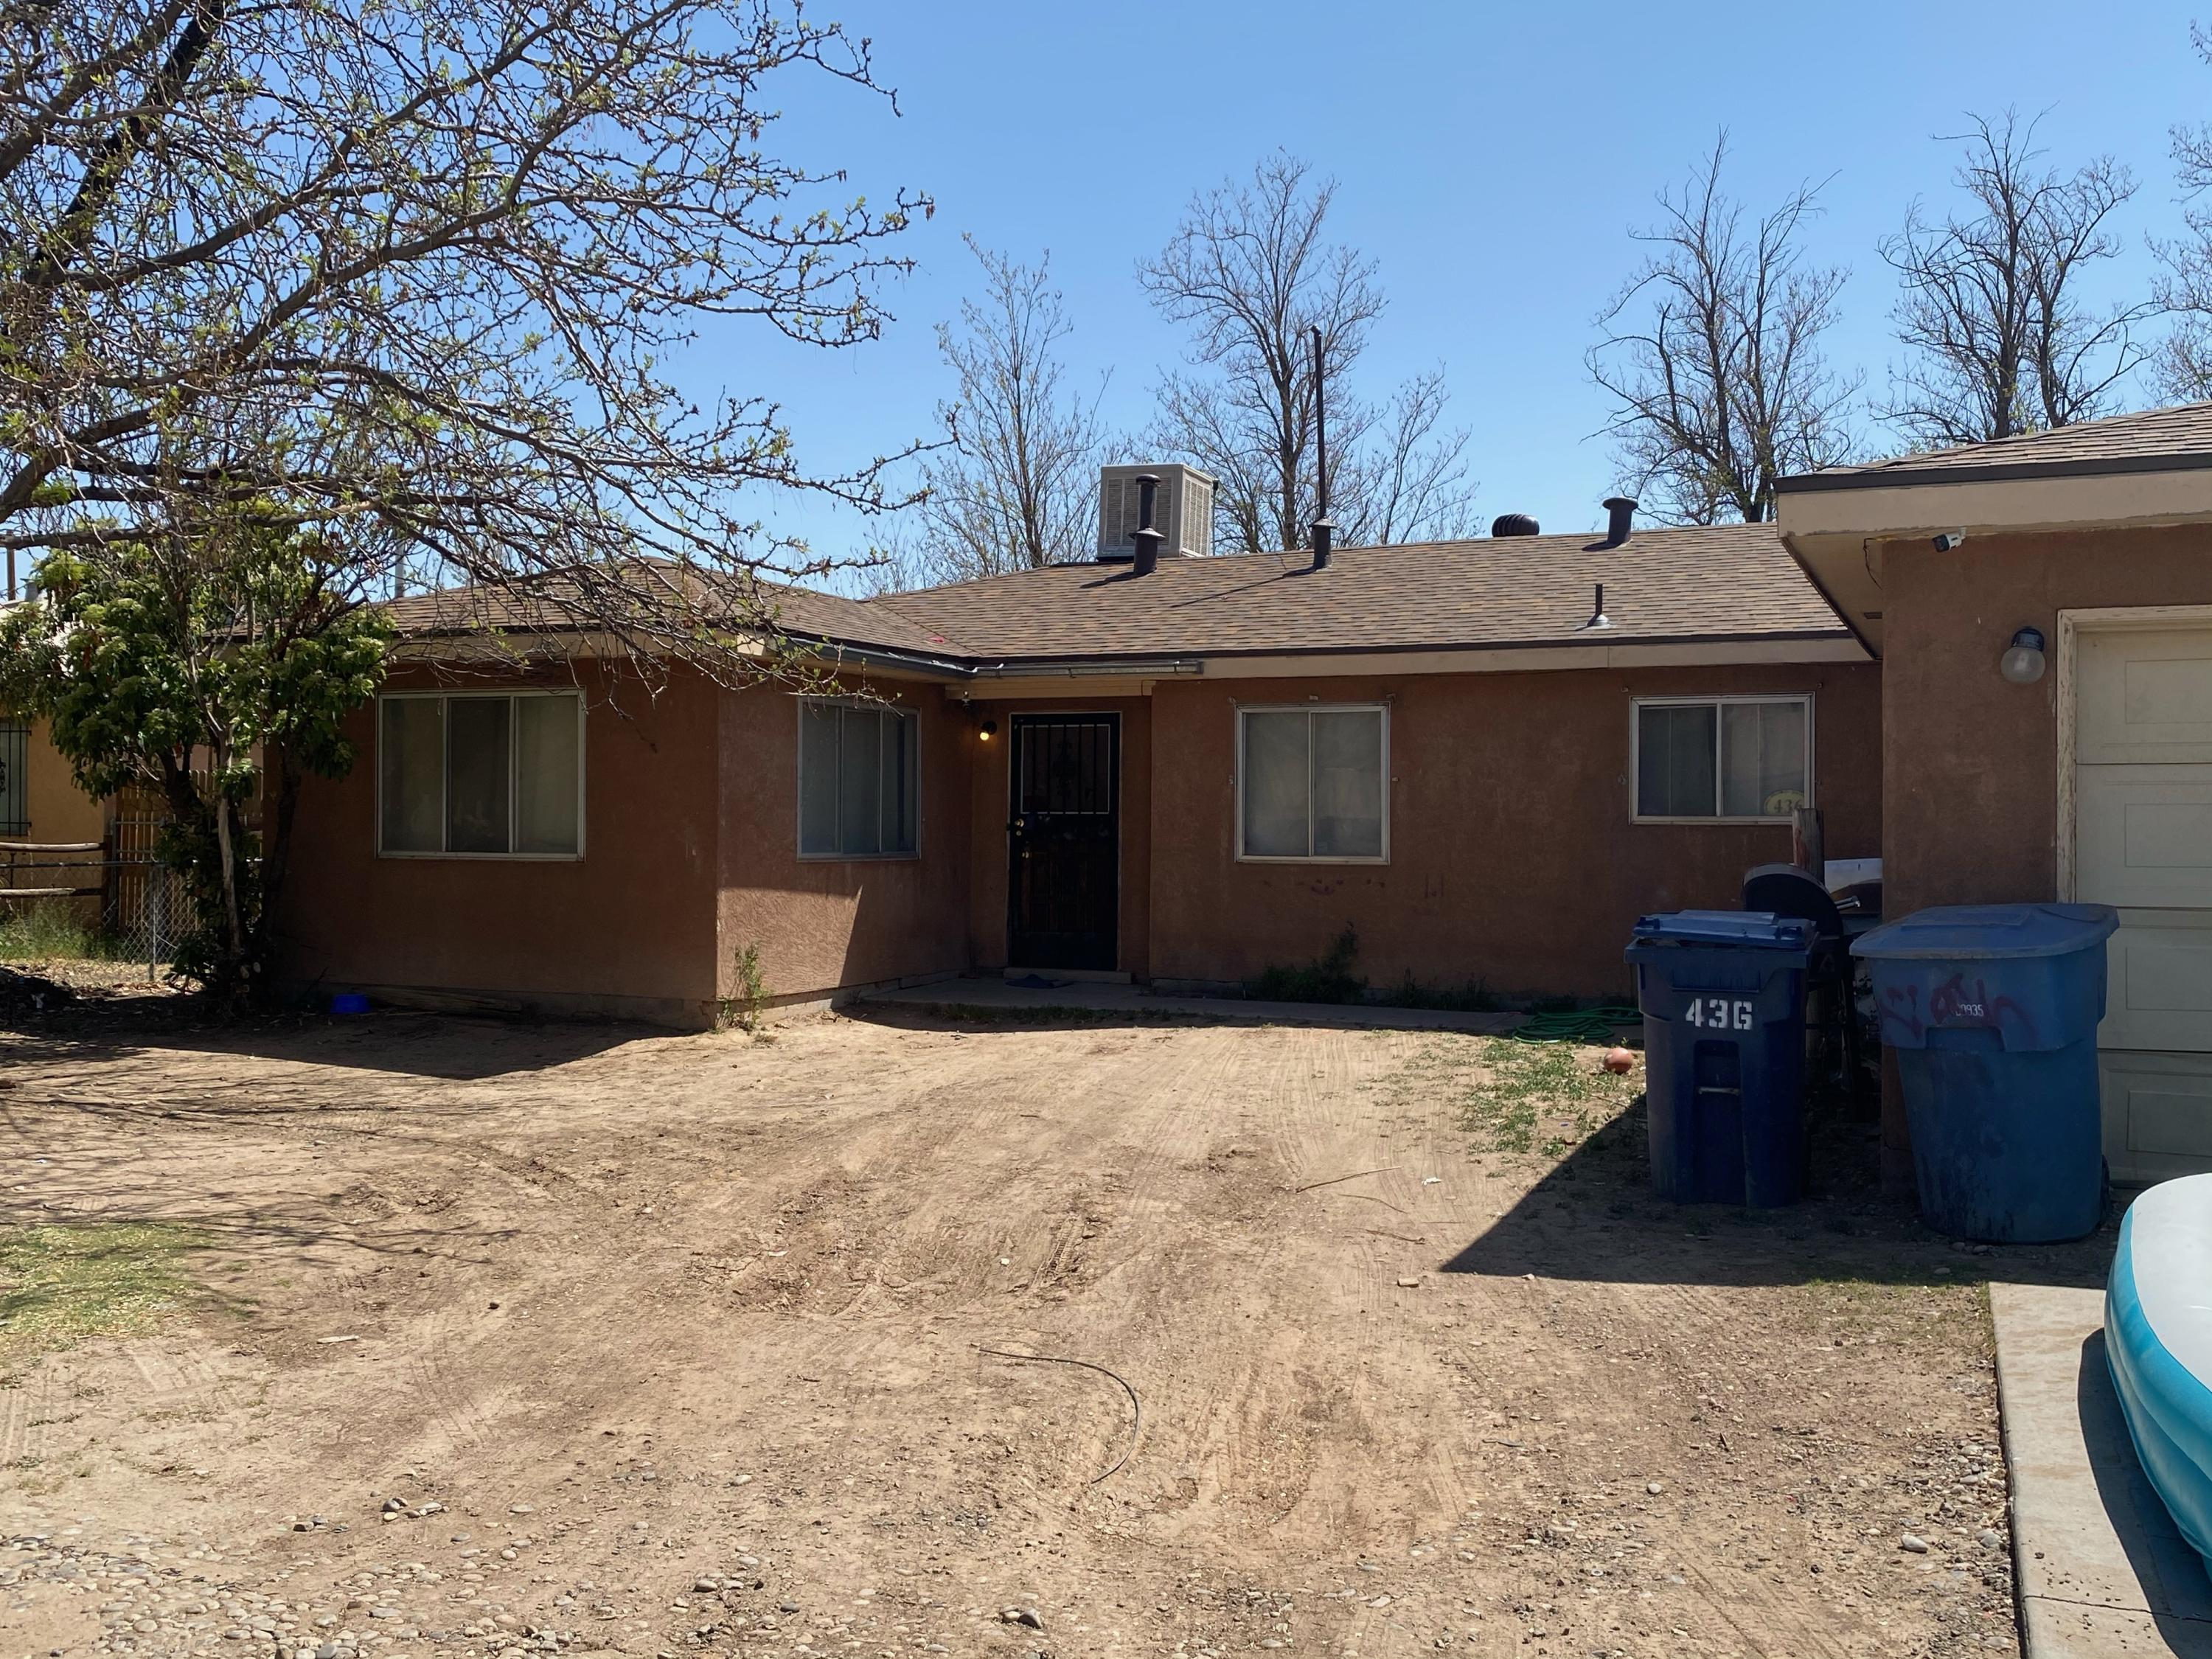 Come see this hidden gem in the heart of Los Lunas. With your personal touches, transform this house to your Home! With 2 bedrooms and 1 bath, and the possibility of a third bedroom, this home boasts two living areas and a one car garage.